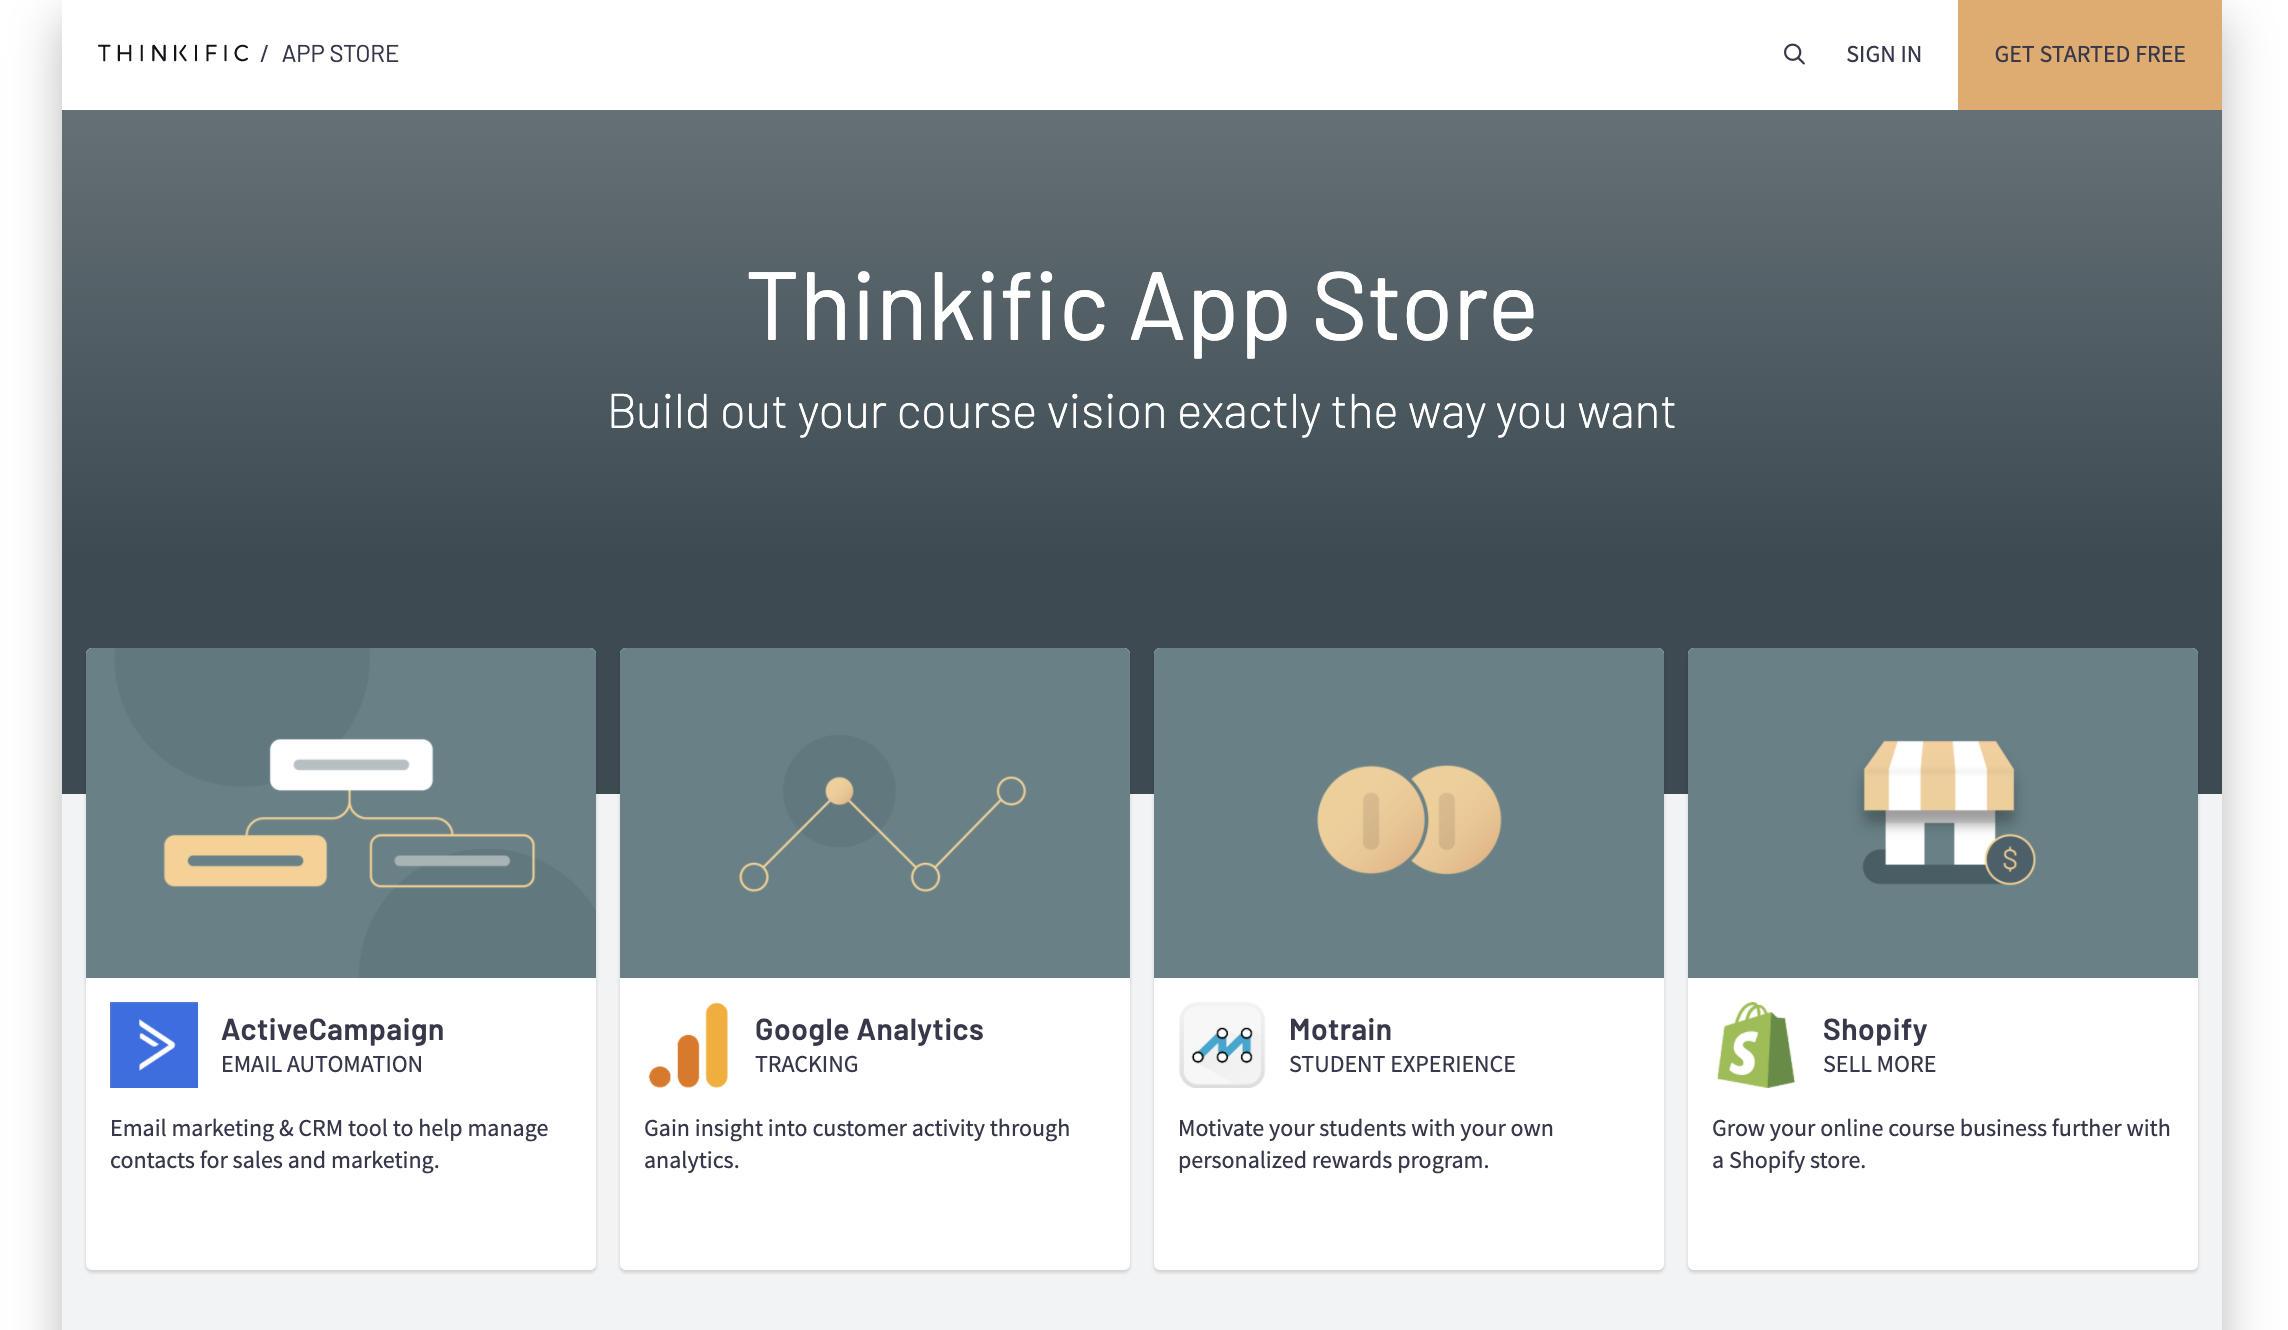 It's never been easier to make your online course vision a reality. Our app store empowers anyone to create meaningful learning experiences, build community or grow a business, no matter their expertise.